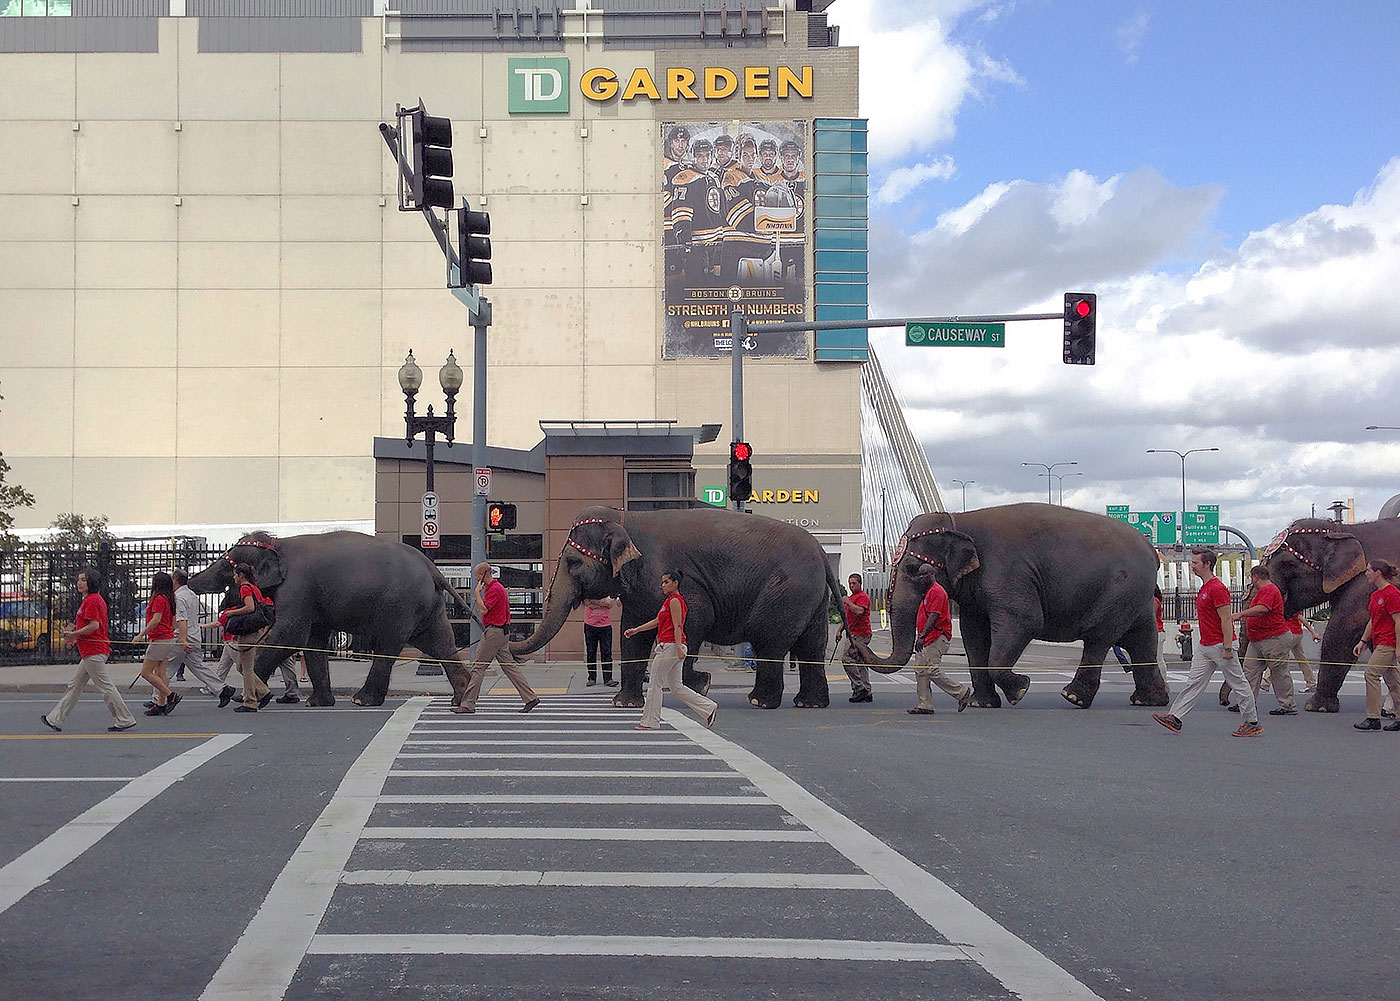 Elephants parading down Causeway Street in Boston - October 15, 2014